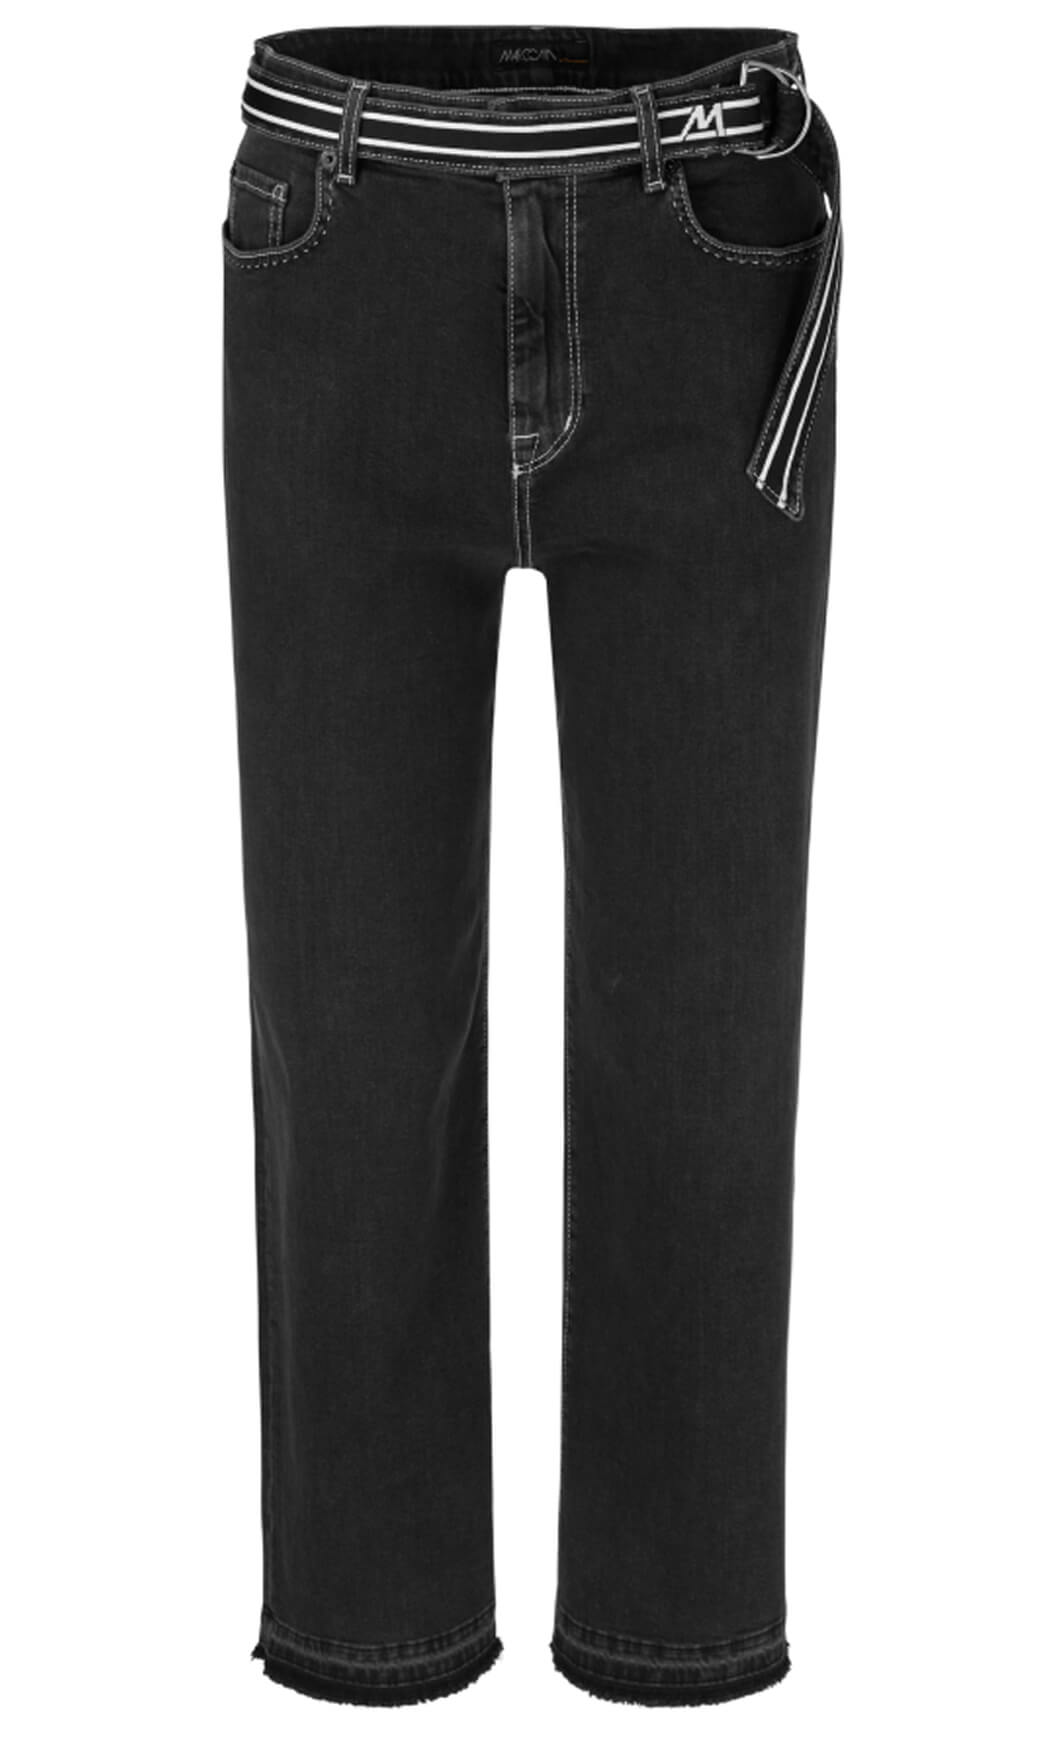 Marccain Sports Dames Jeans met tailleband Grijs